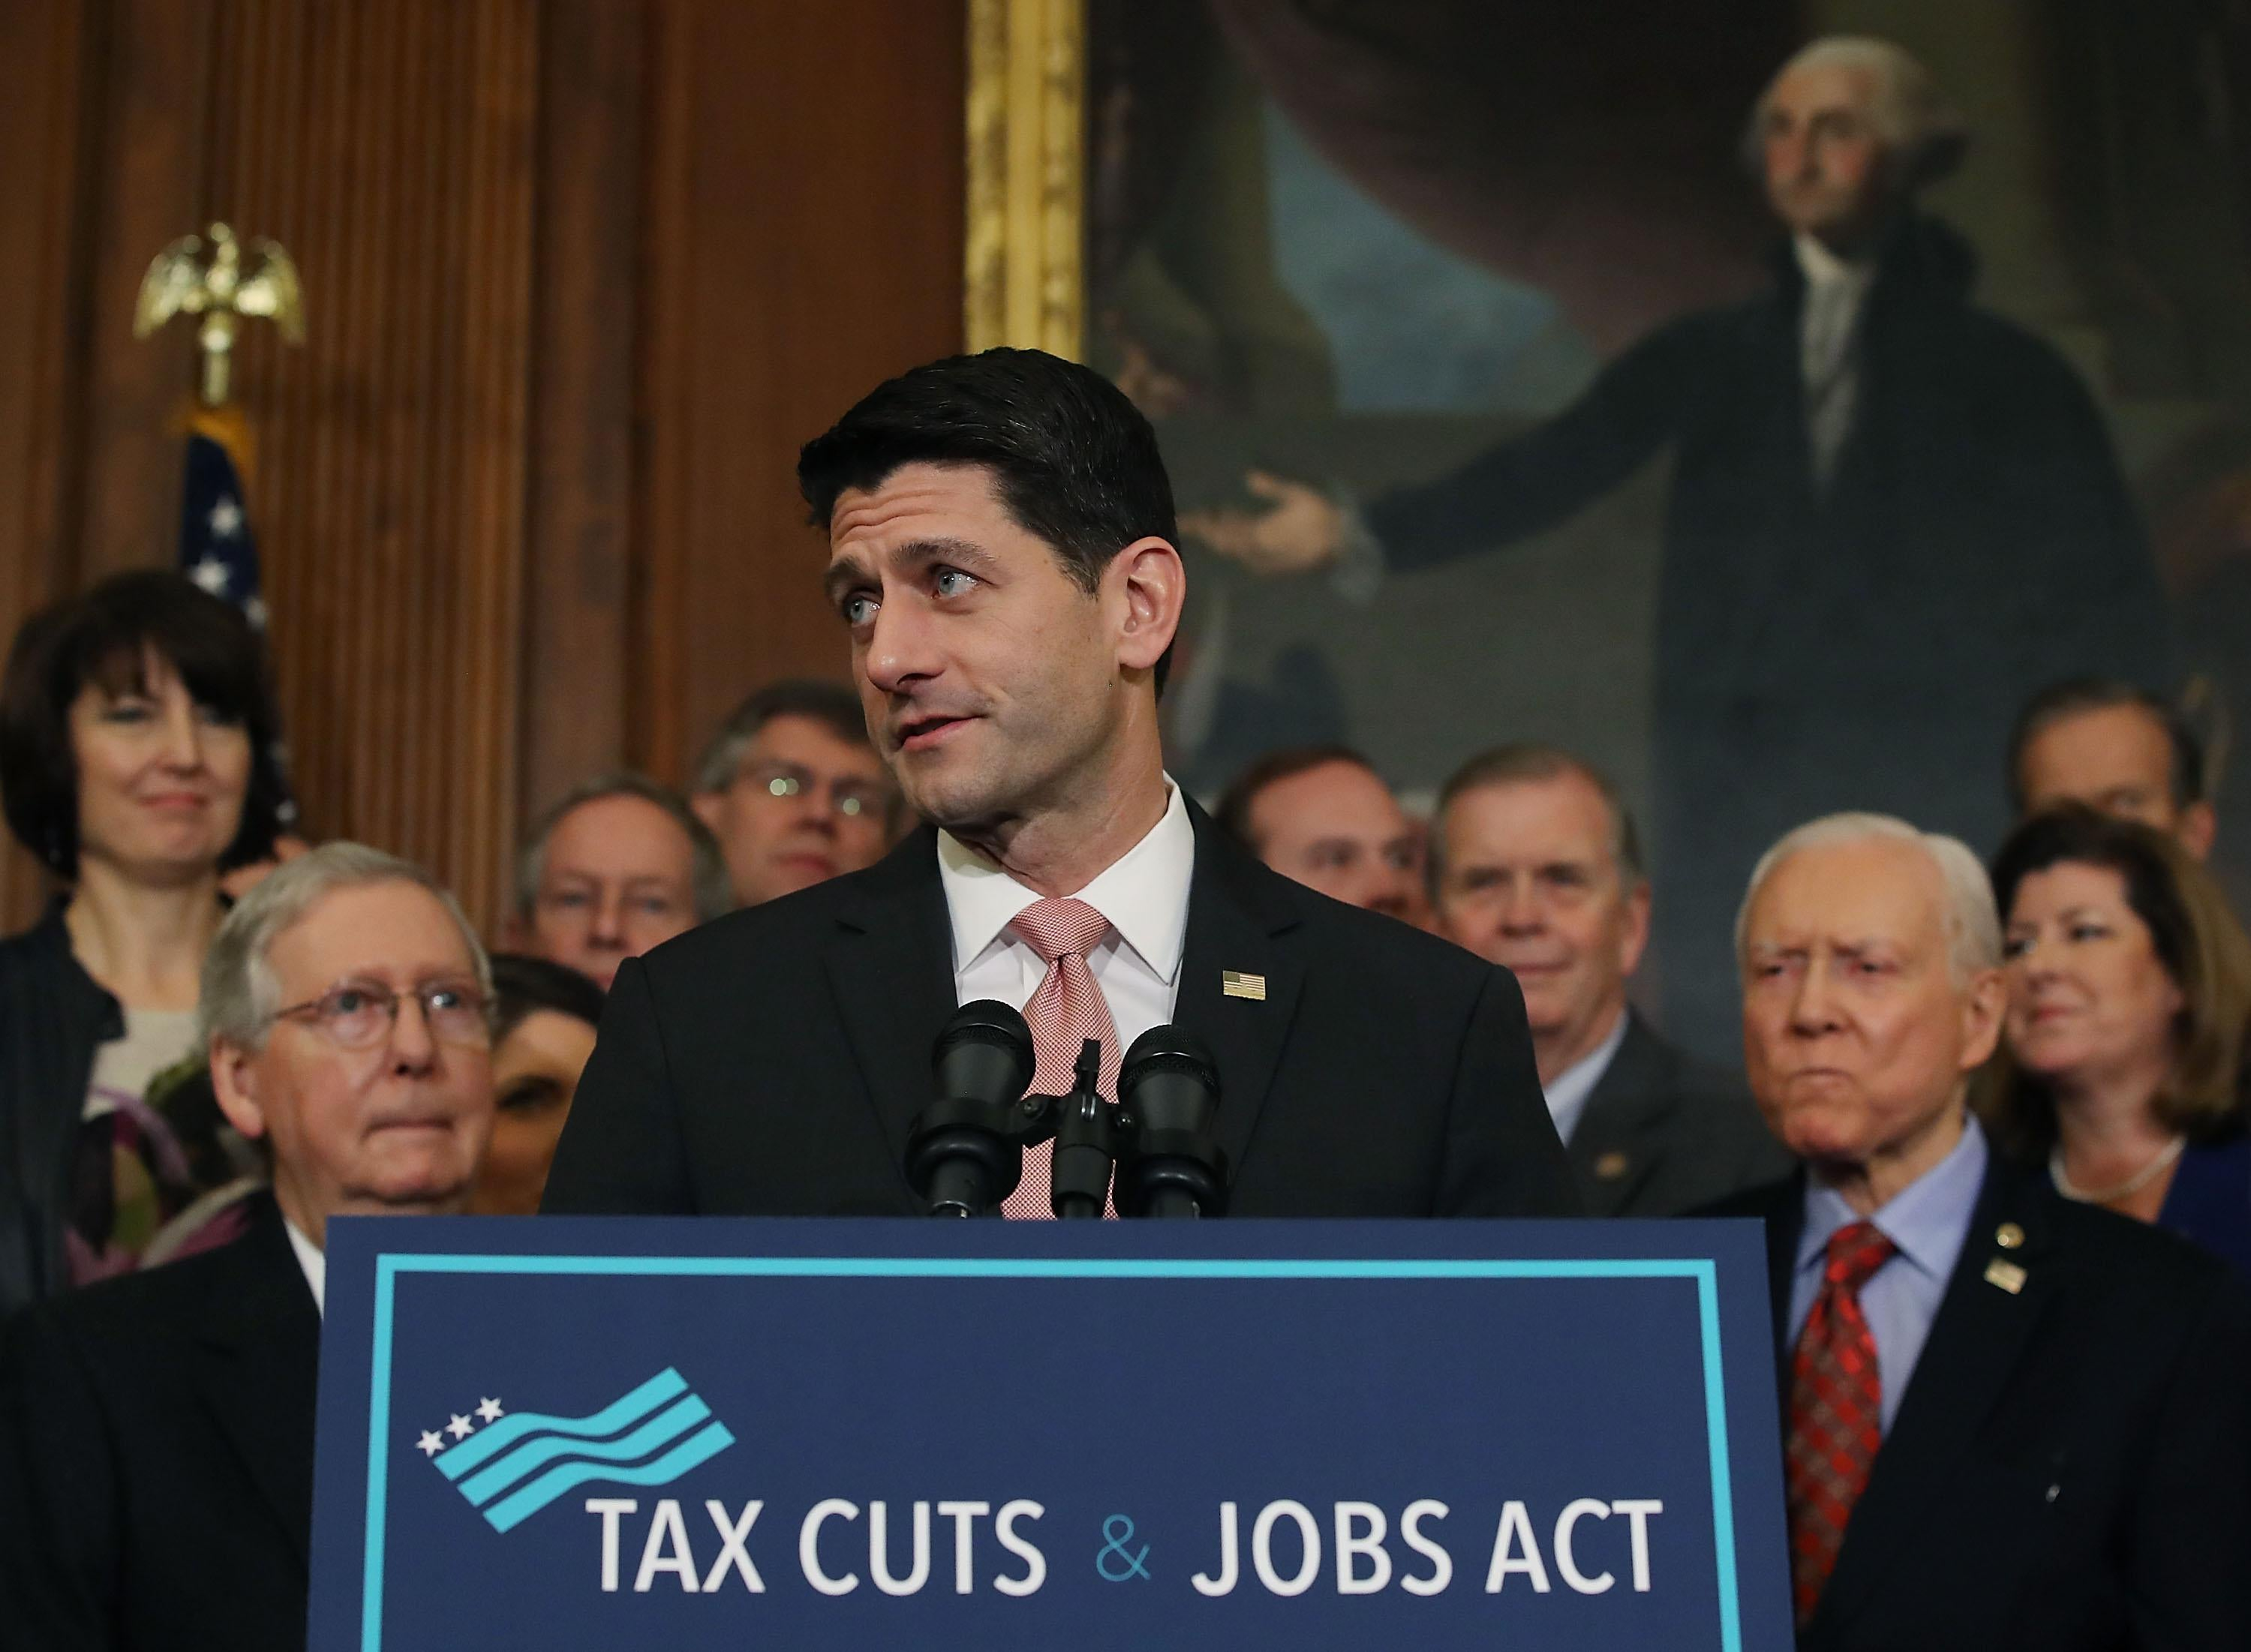 U.S. House Speaker Paul Ryan, flanked by Republican lawmakers, speaks during a ceremony for the conference report to the Tax Cuts and Jobs Act.